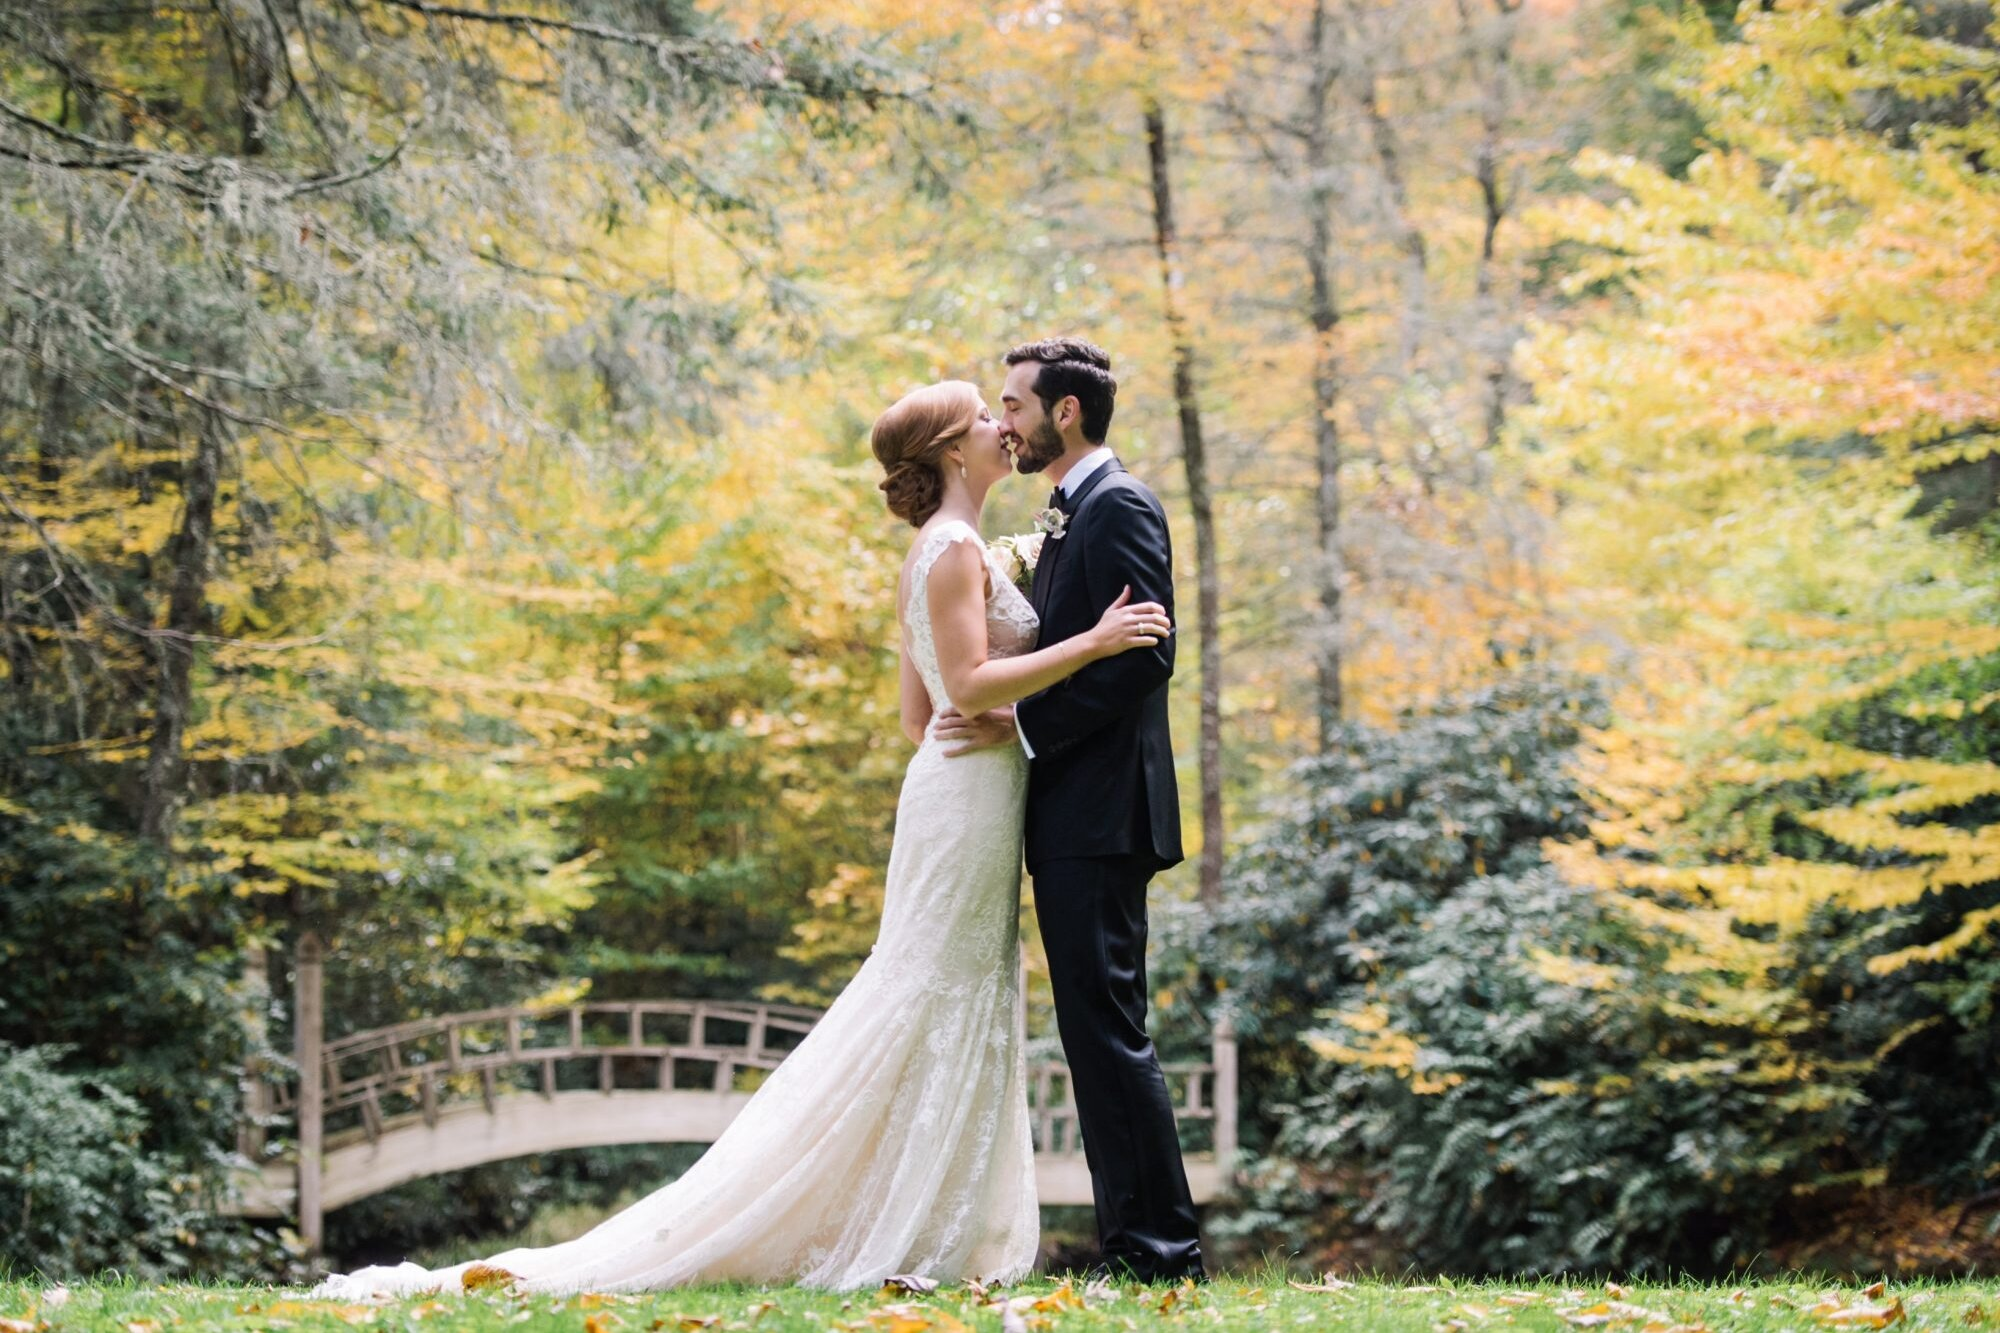 25 Wedding Blessings Prayers And Readings For The Big Day Southern Living,Petite Dresses Wedding Guest